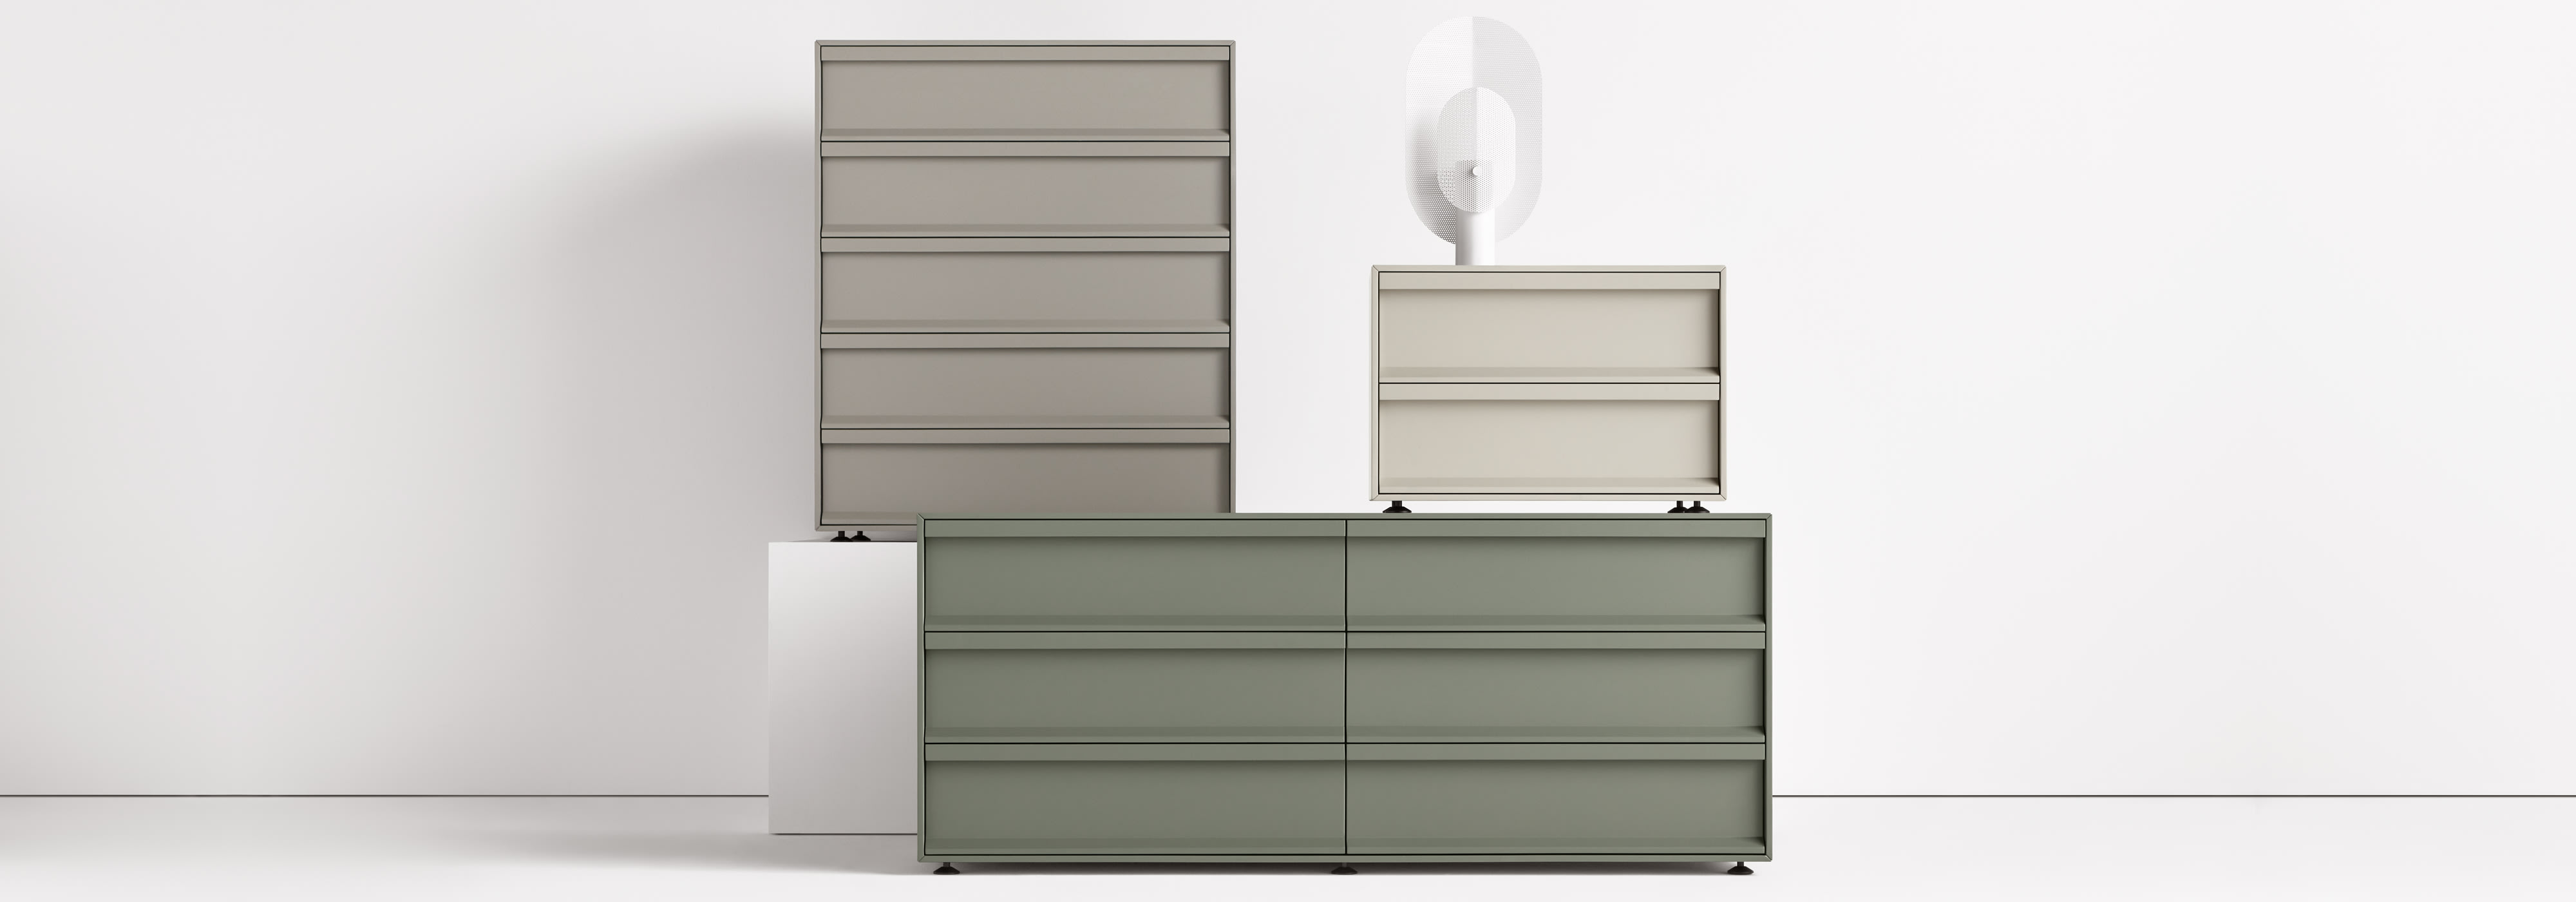 Modern Dressers Modern Bedroom Dressers Blu Dot within 11 Some of the Coolest Concepts of How to Craft Modern Bedroom Dresser